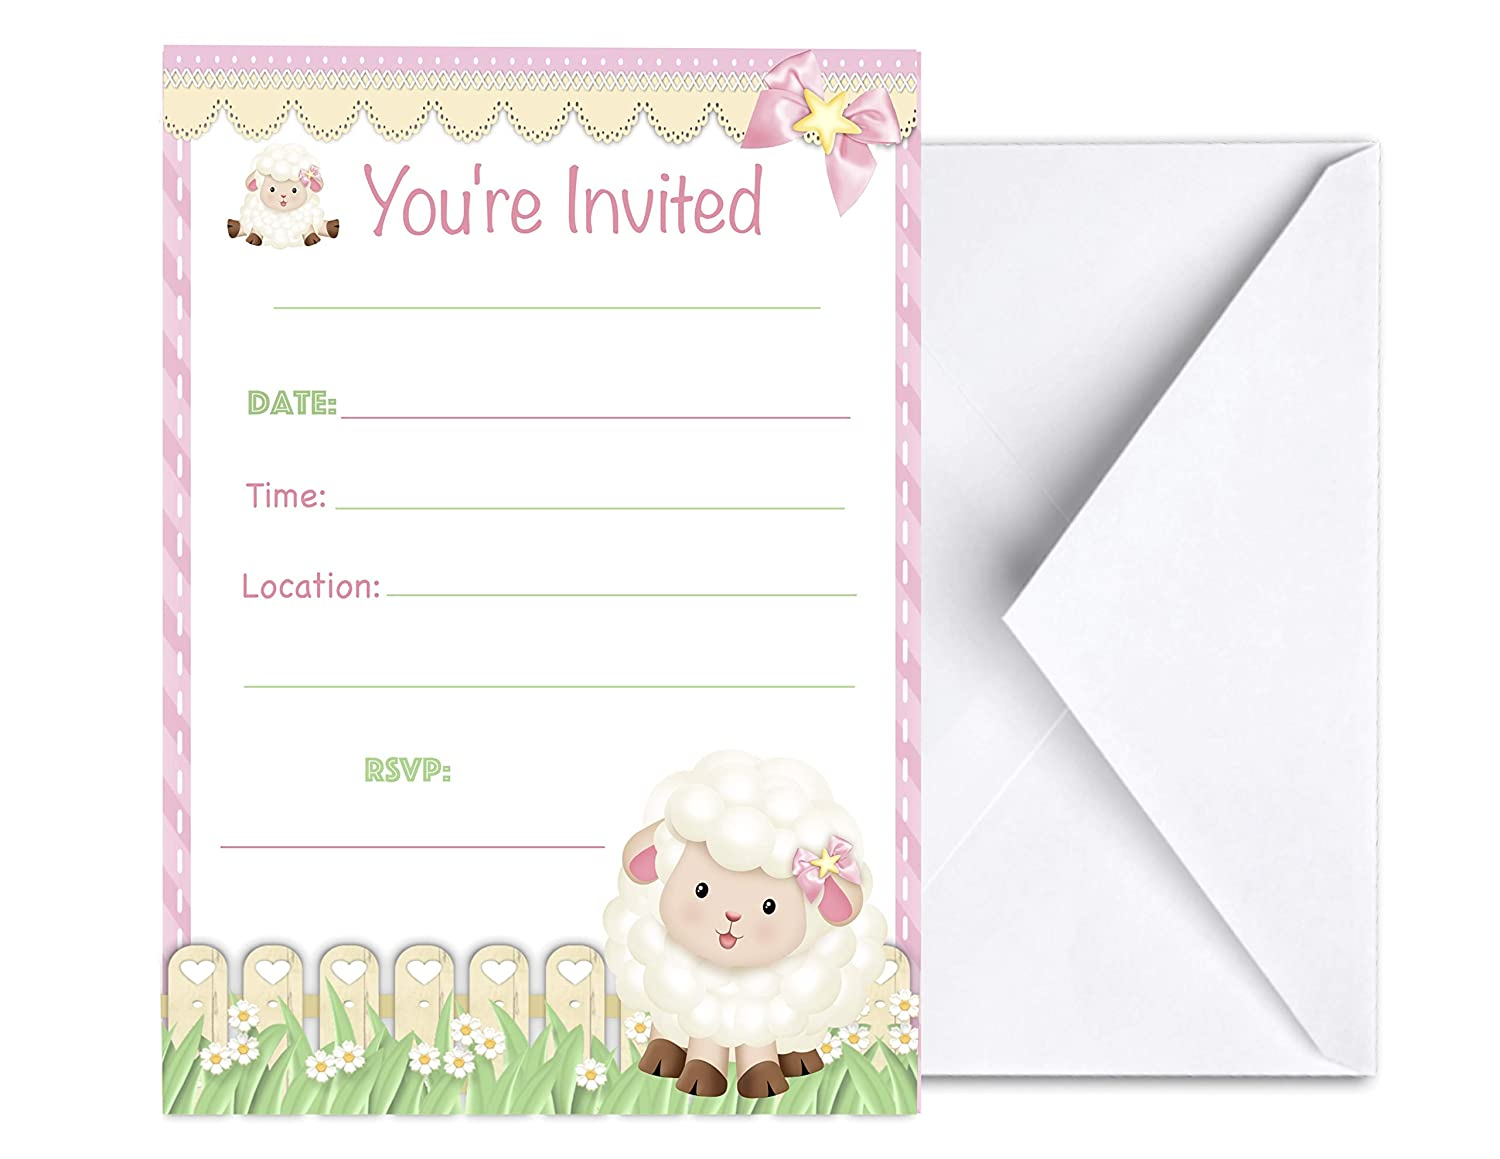 Pink Lamb Birthday Party Invites Cards First Communion Baptism Sheep Invitations 15 pcs for Girls Baby Shower